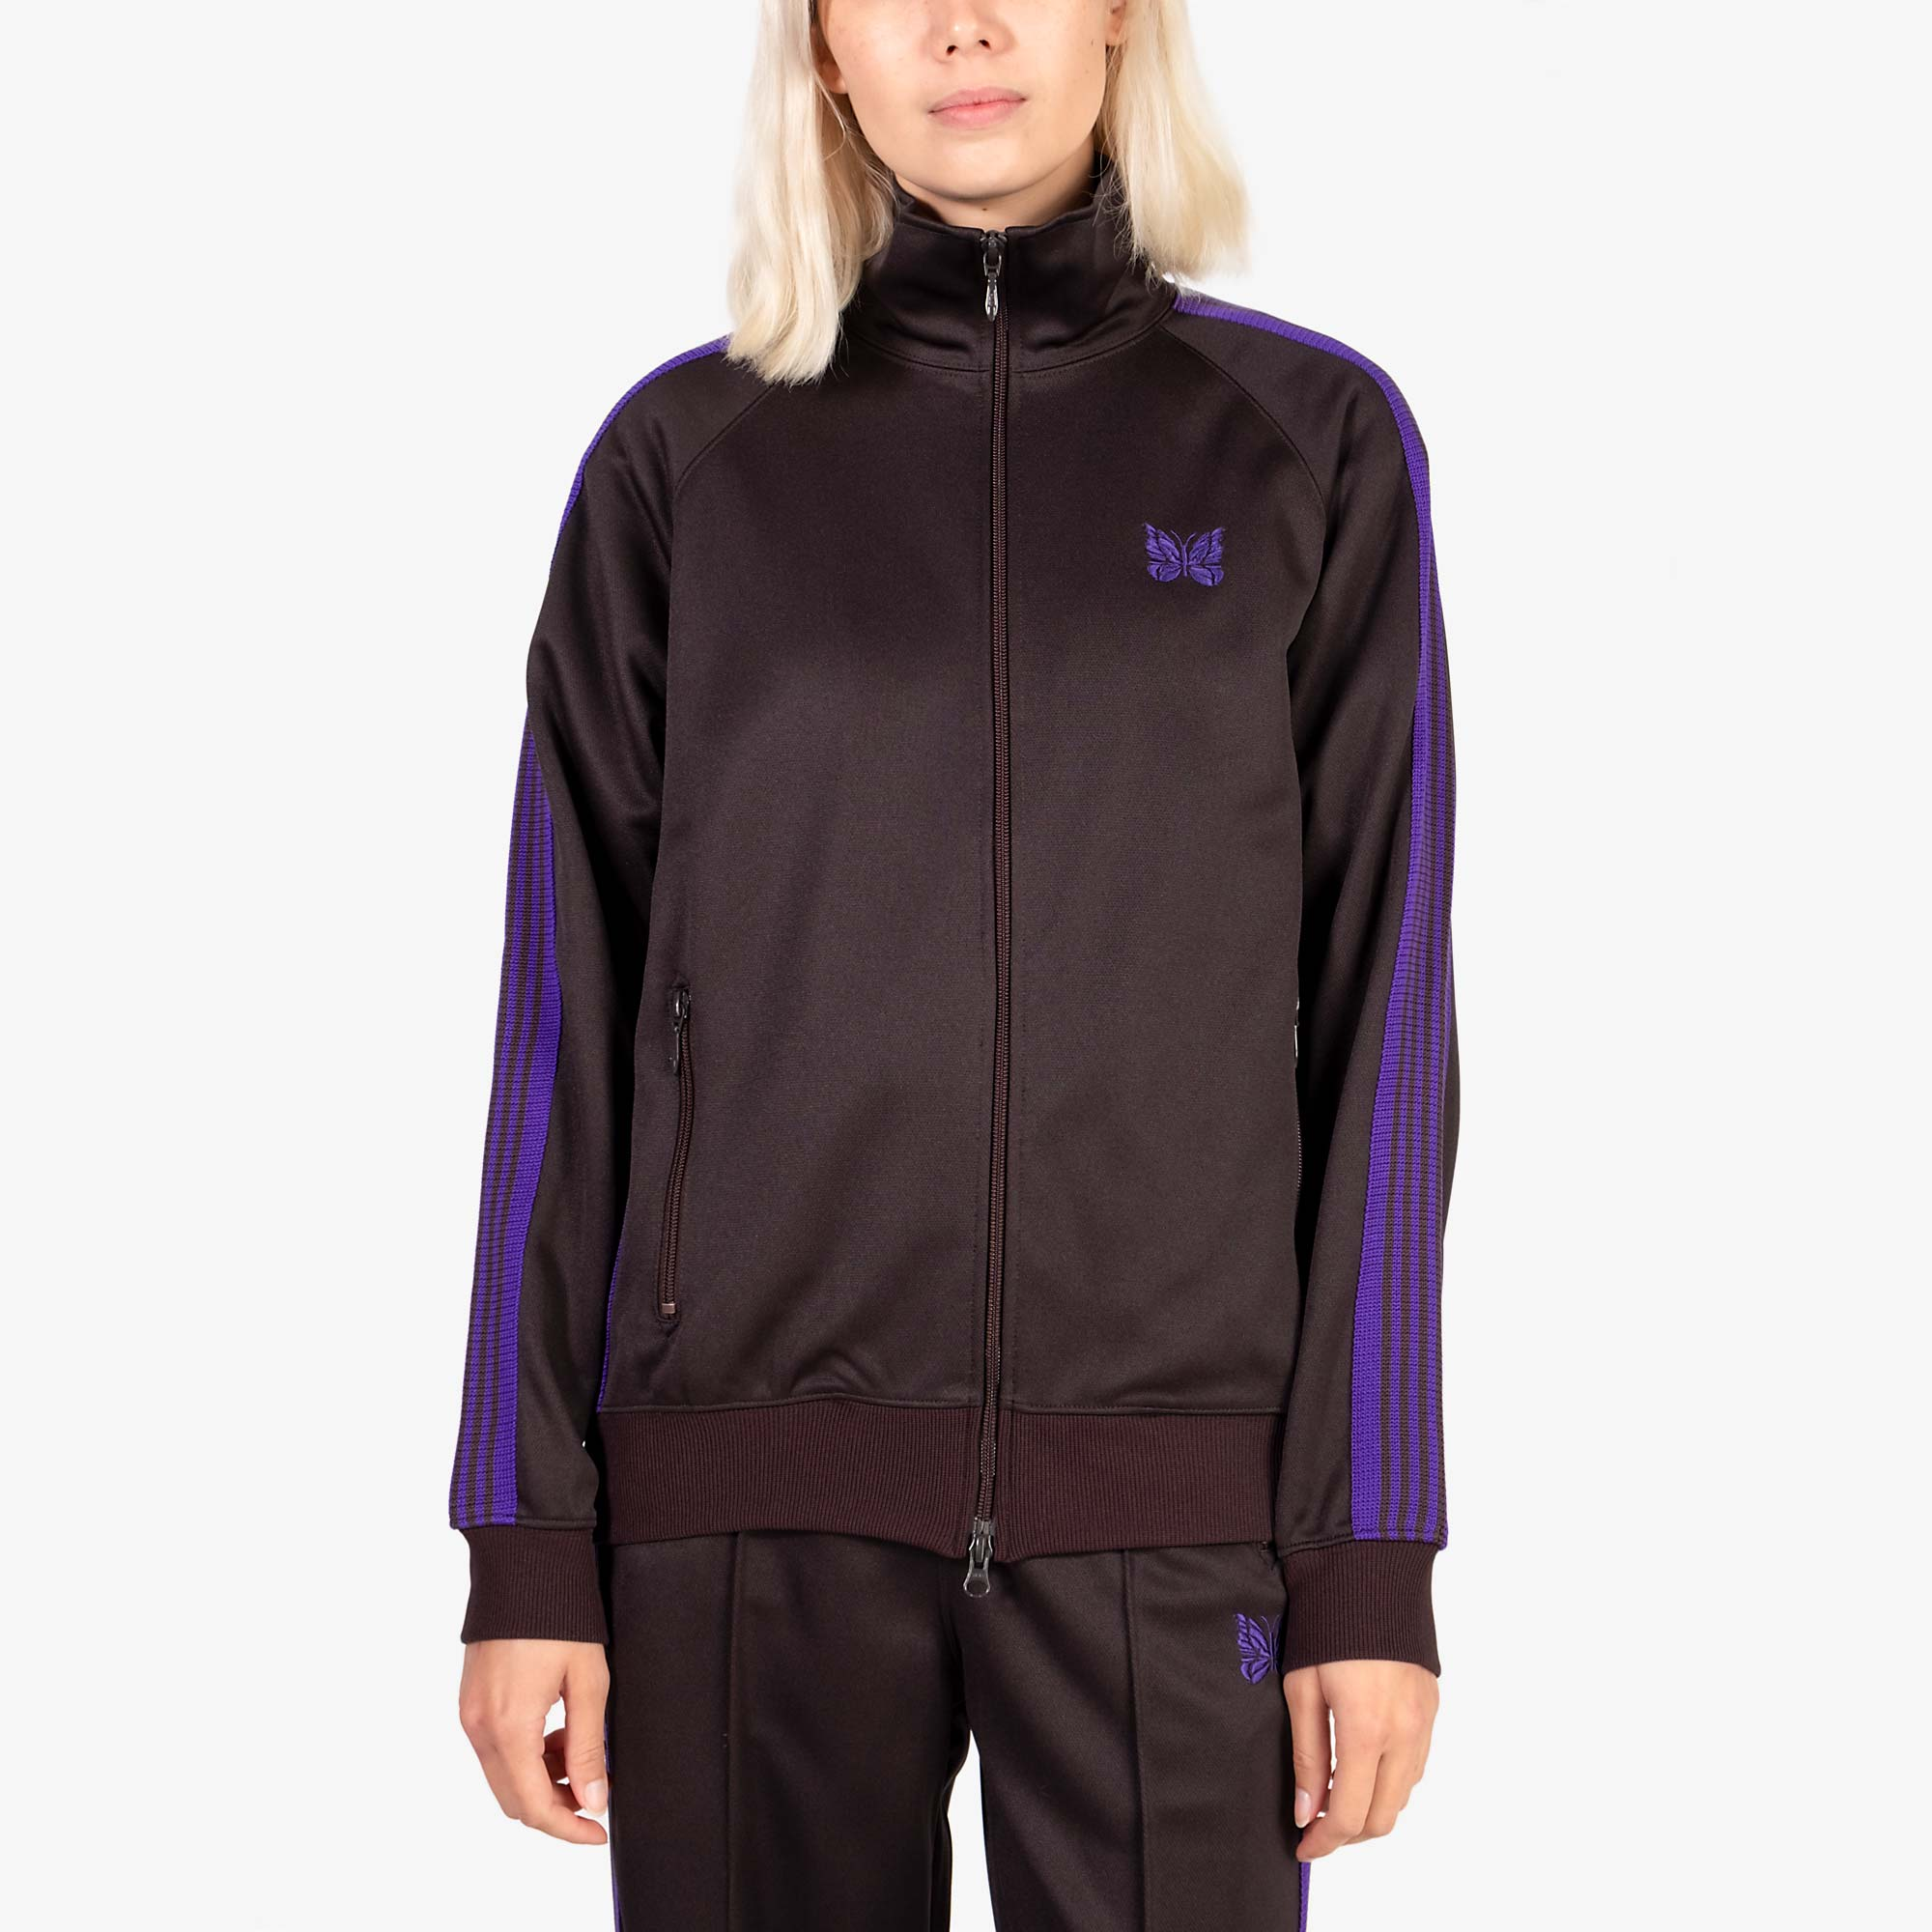 Needles W' Track Jacket Poly Smooth - Charcoal 6